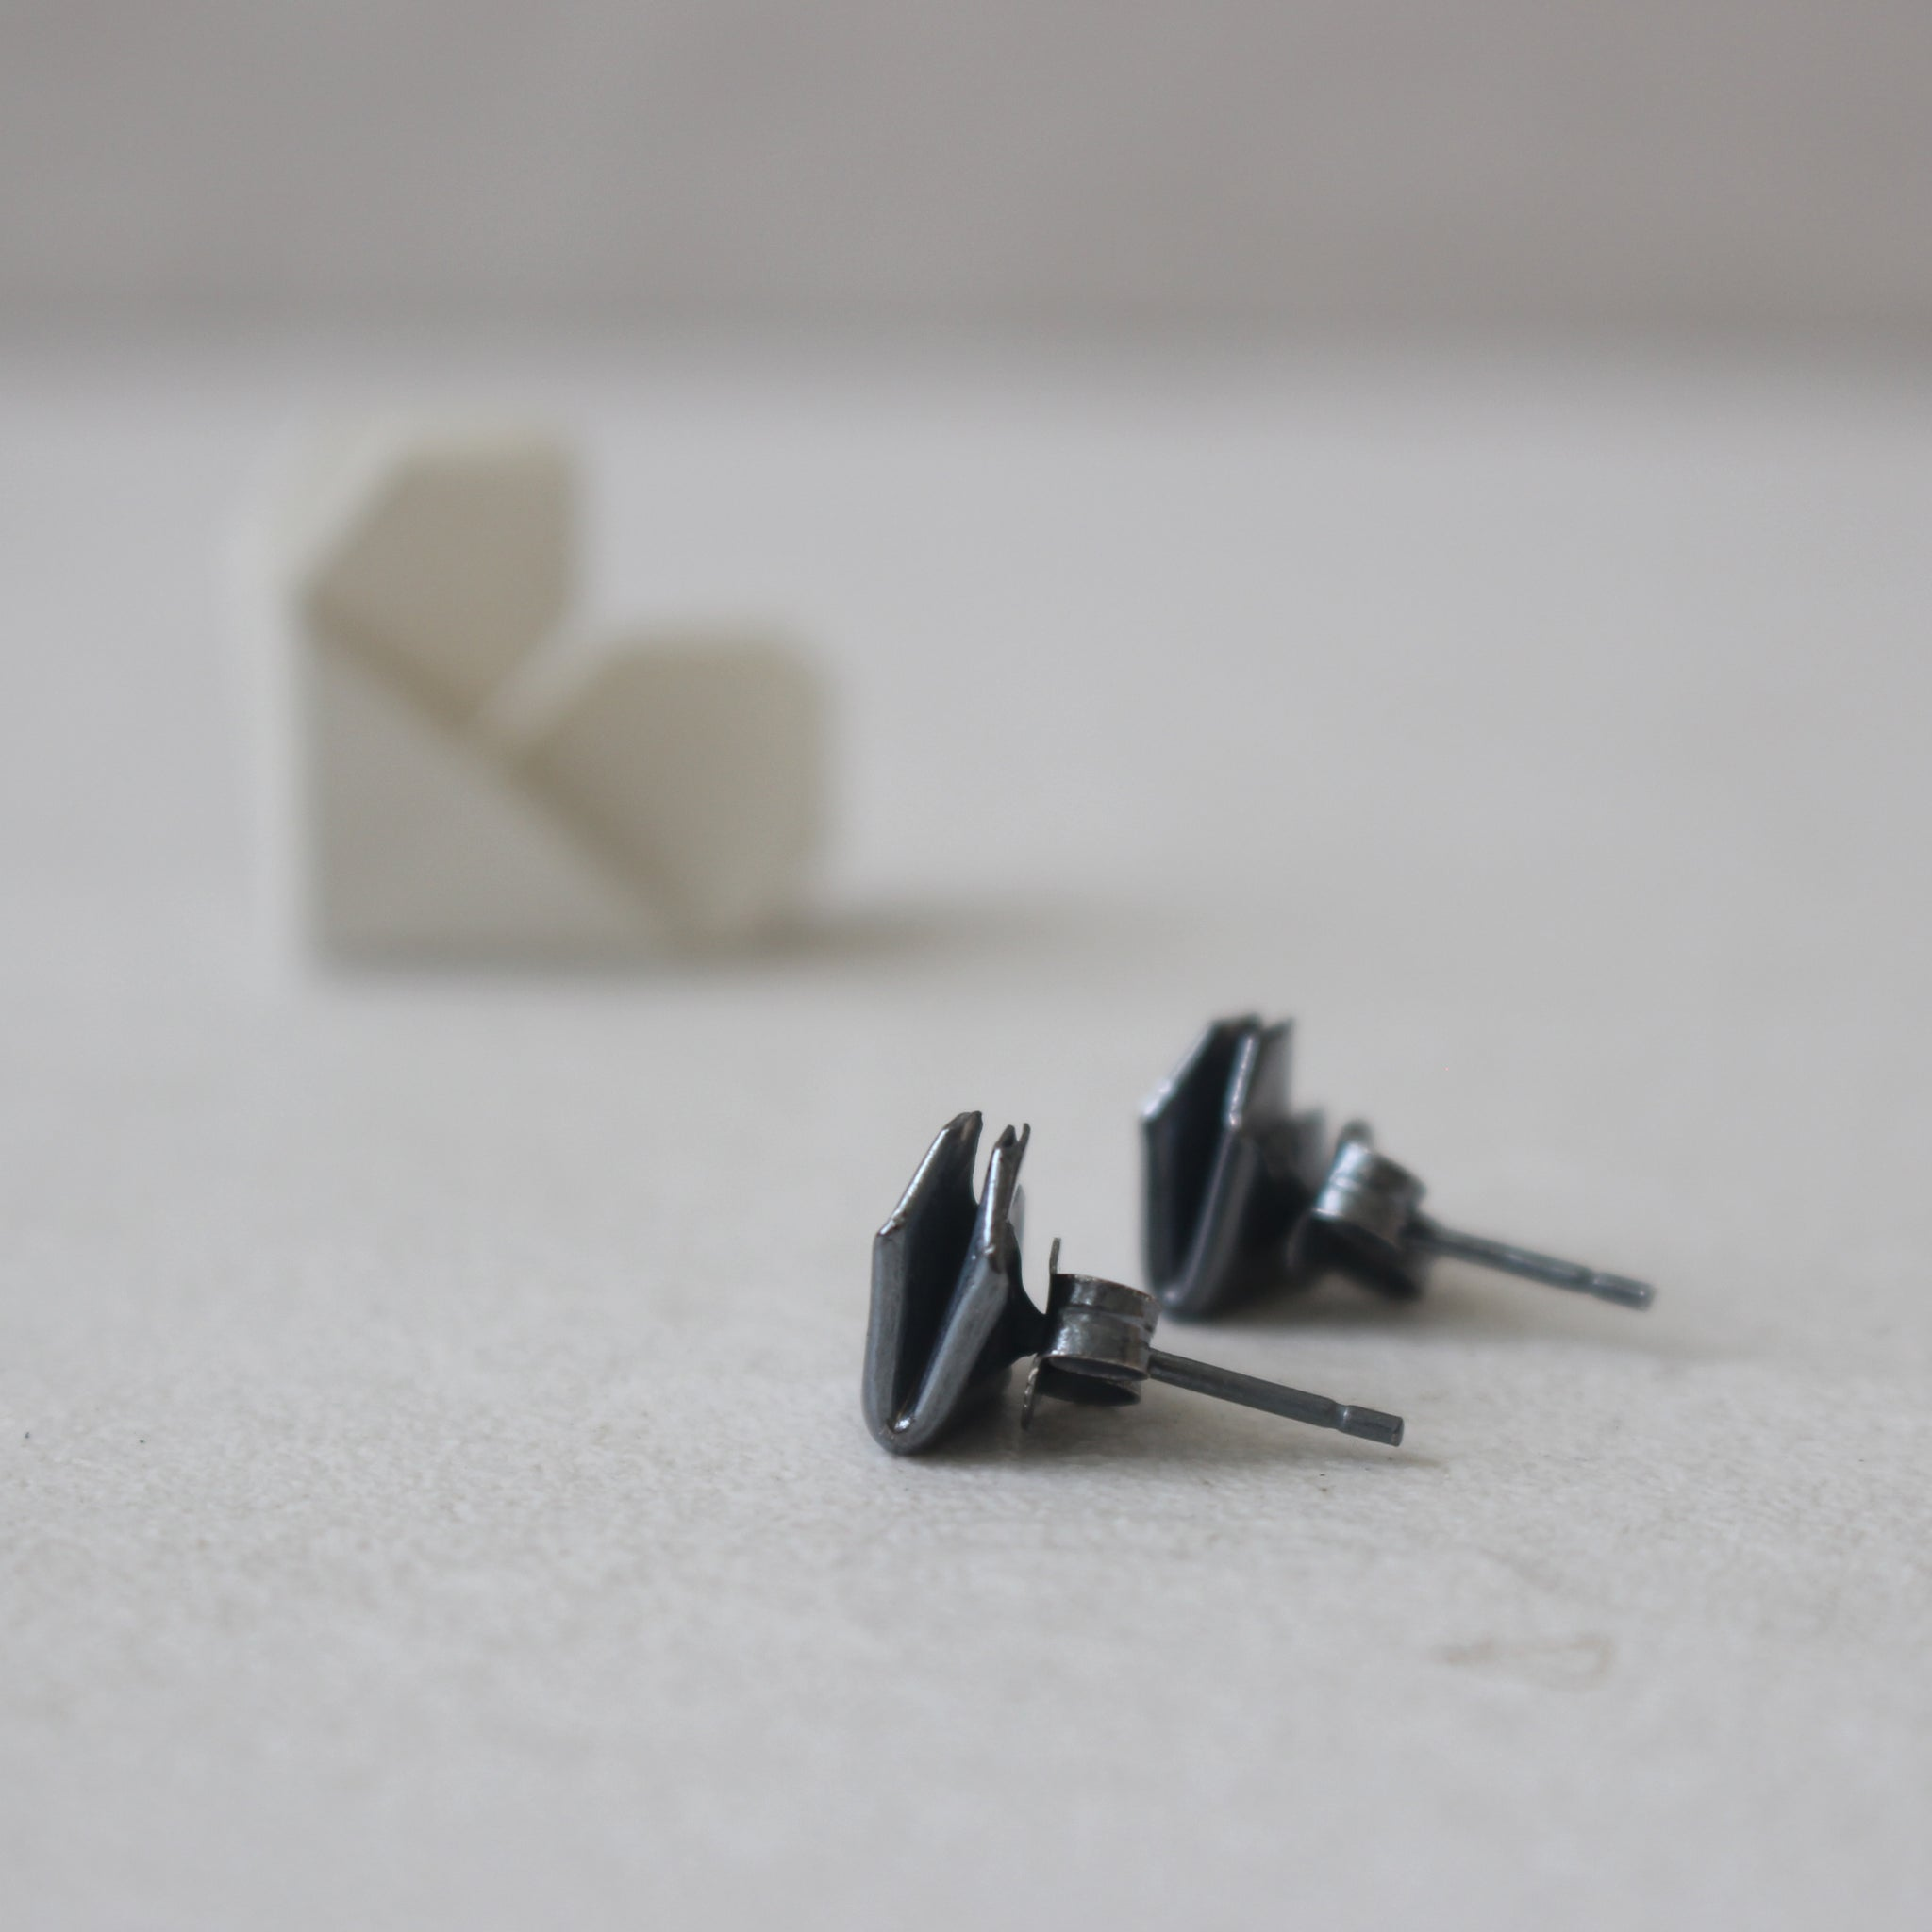 Black Silver Origami Heart Stud Earrings (Babes) / Oxidised Silver Origami Heart Earrings (Medium)